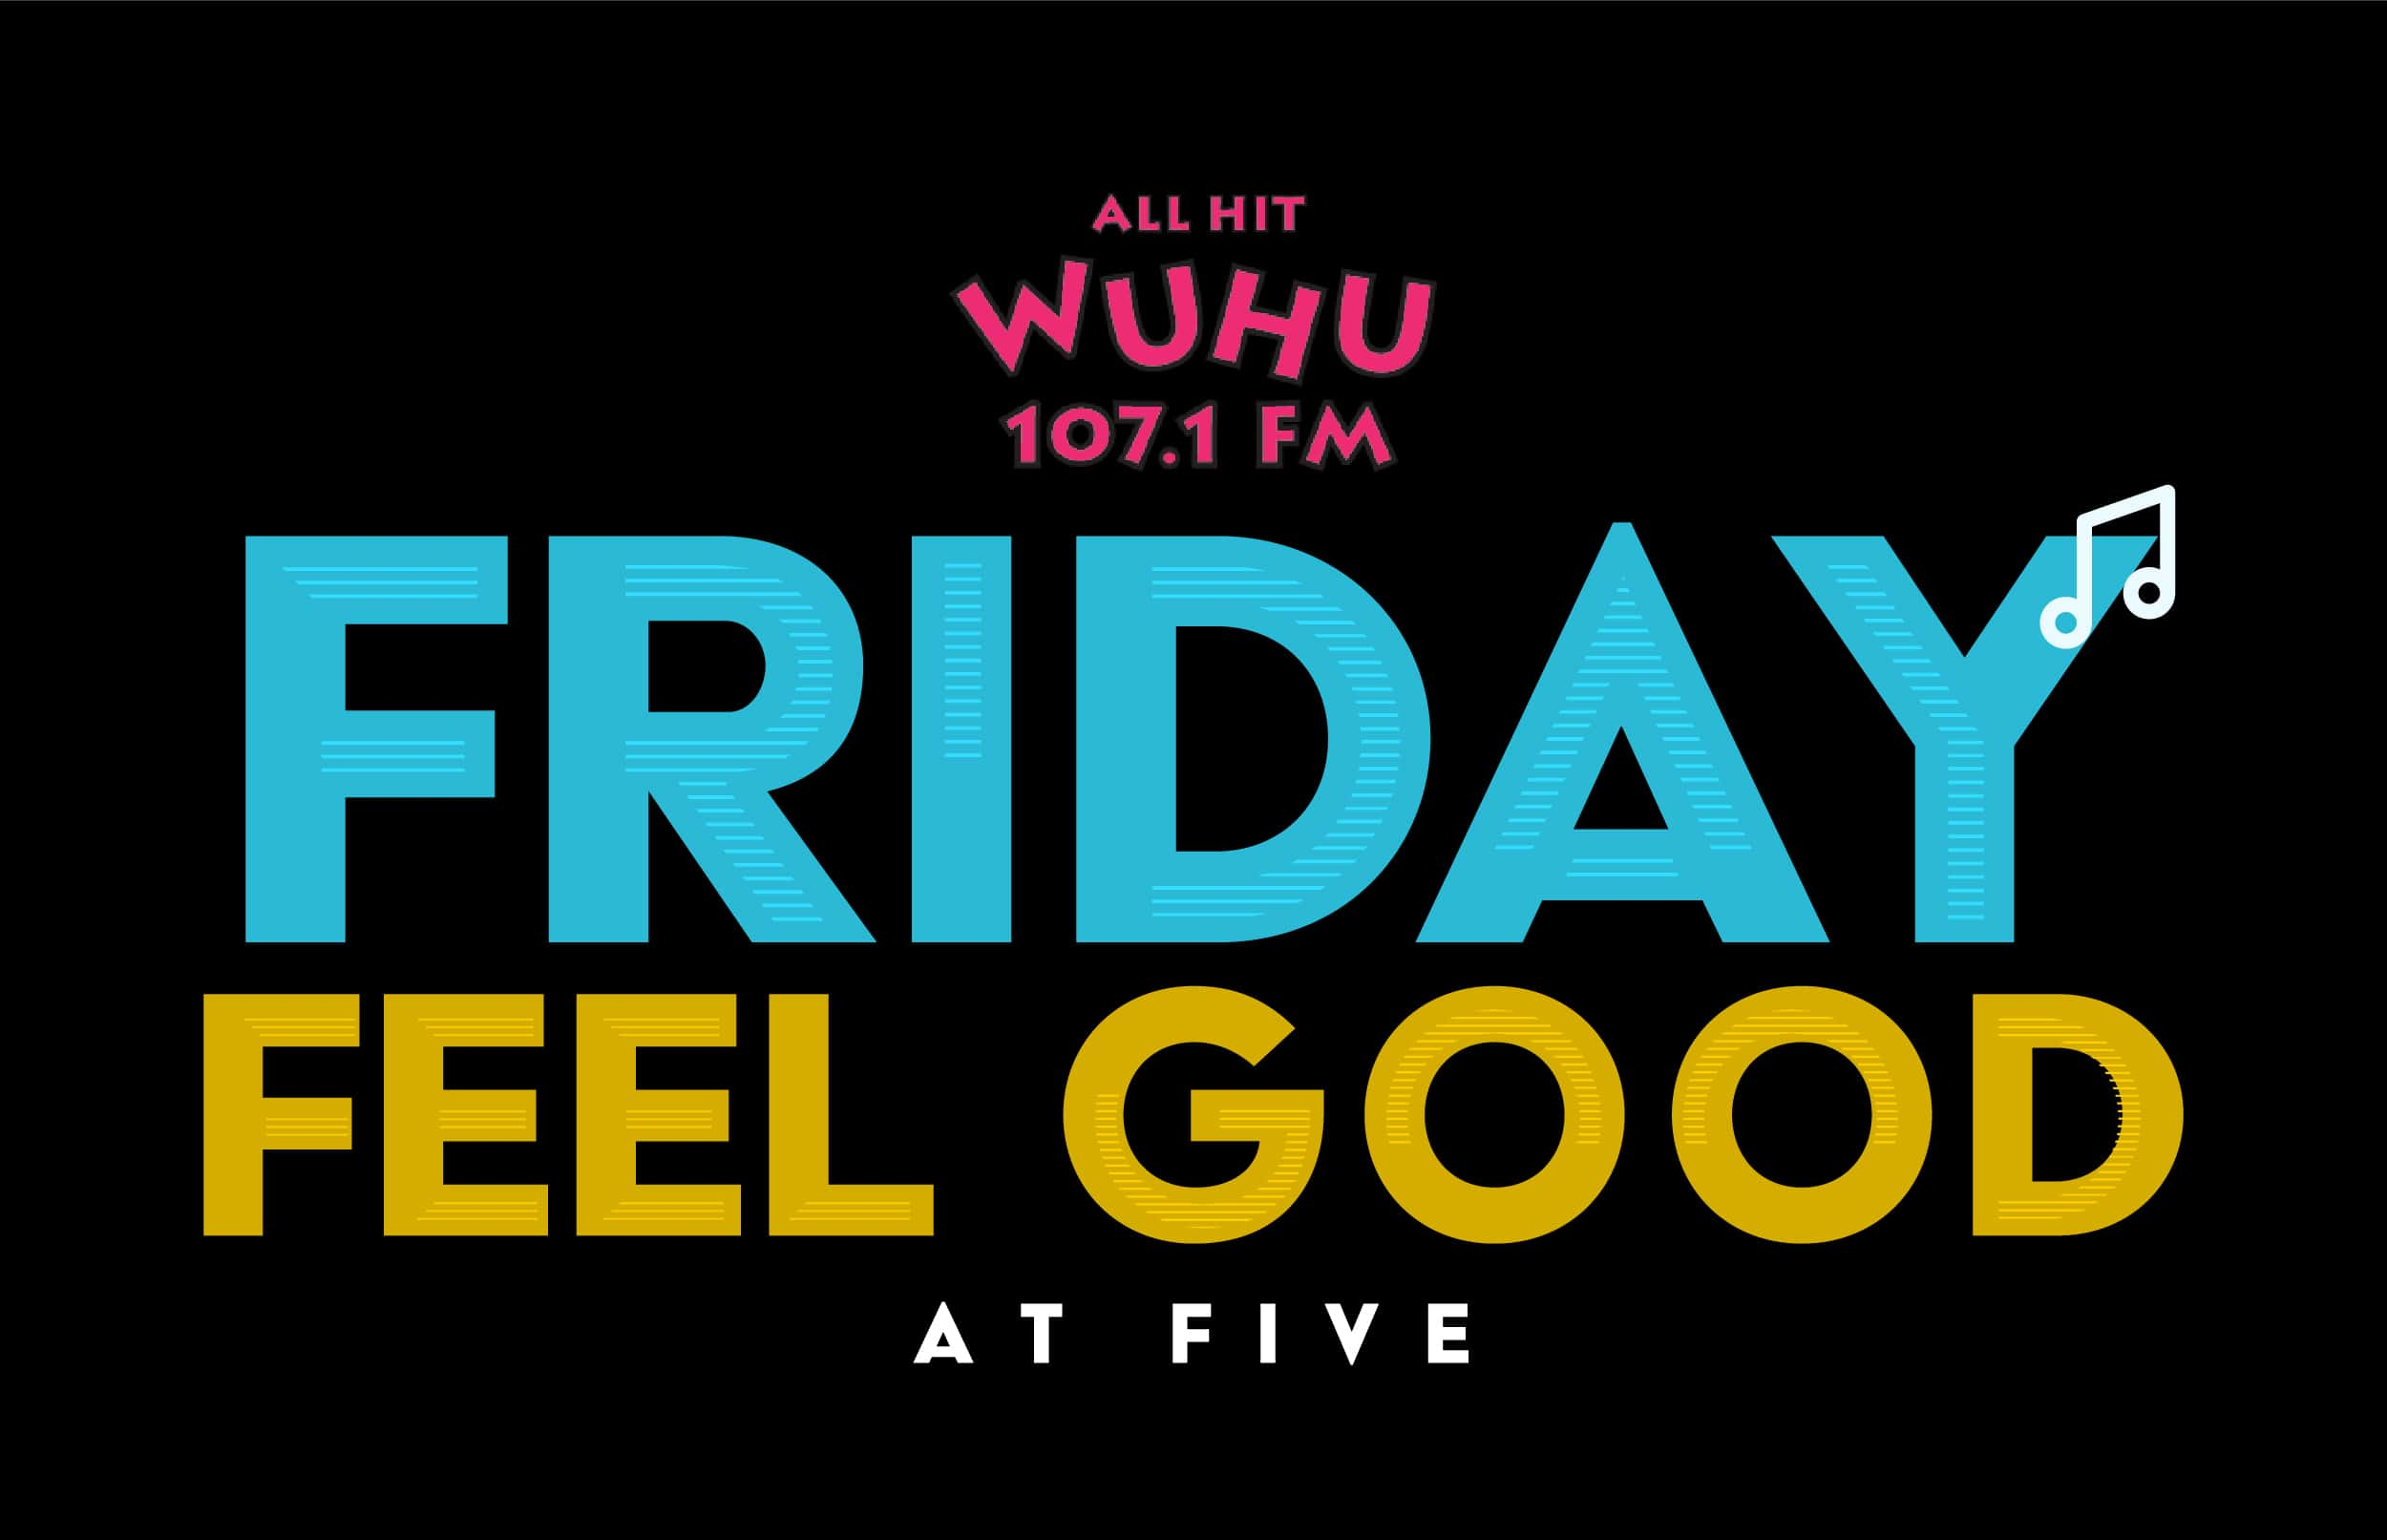 All Hit WUHU 107's Friday Feel Good at Five All Request Hour